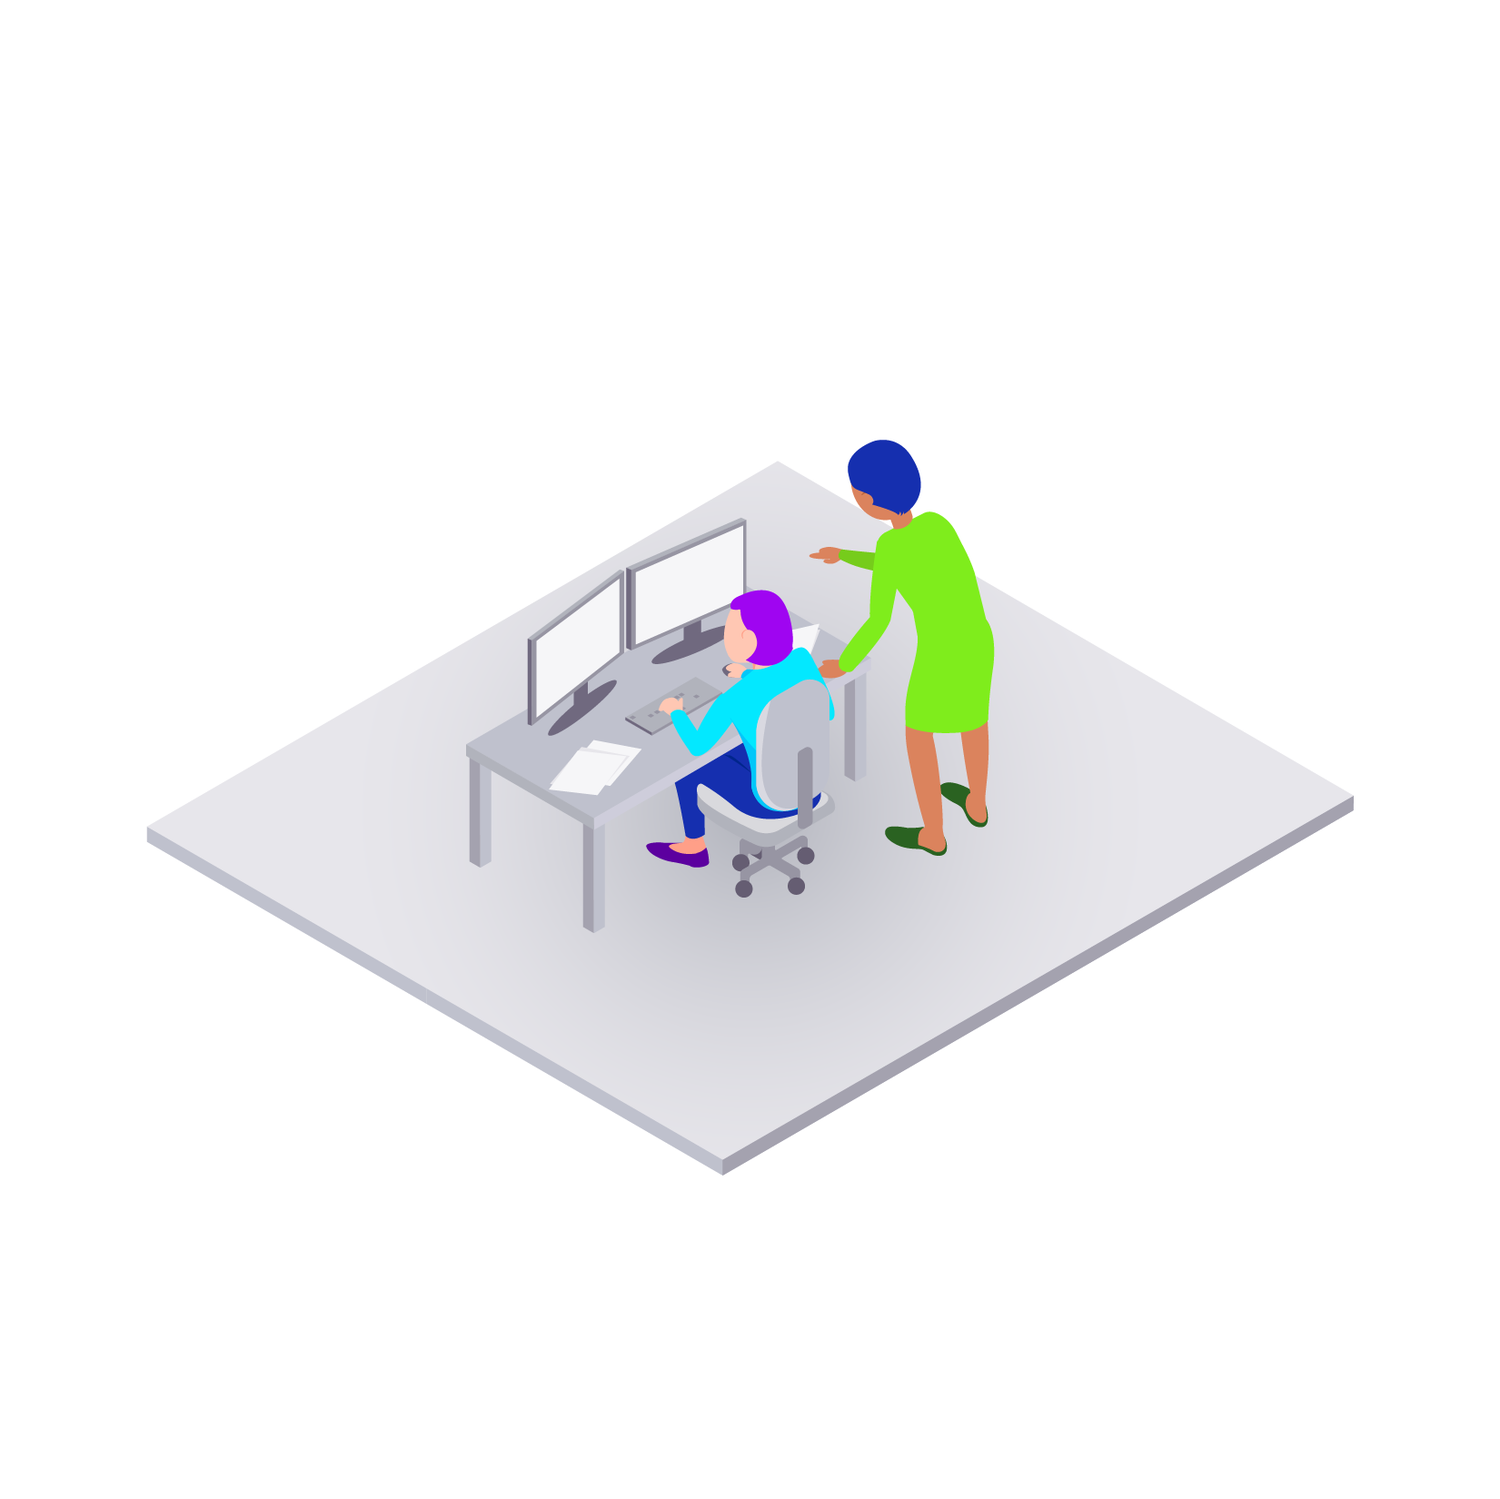 DS-INT_isometric-2019MAY10_collab-info-design.png